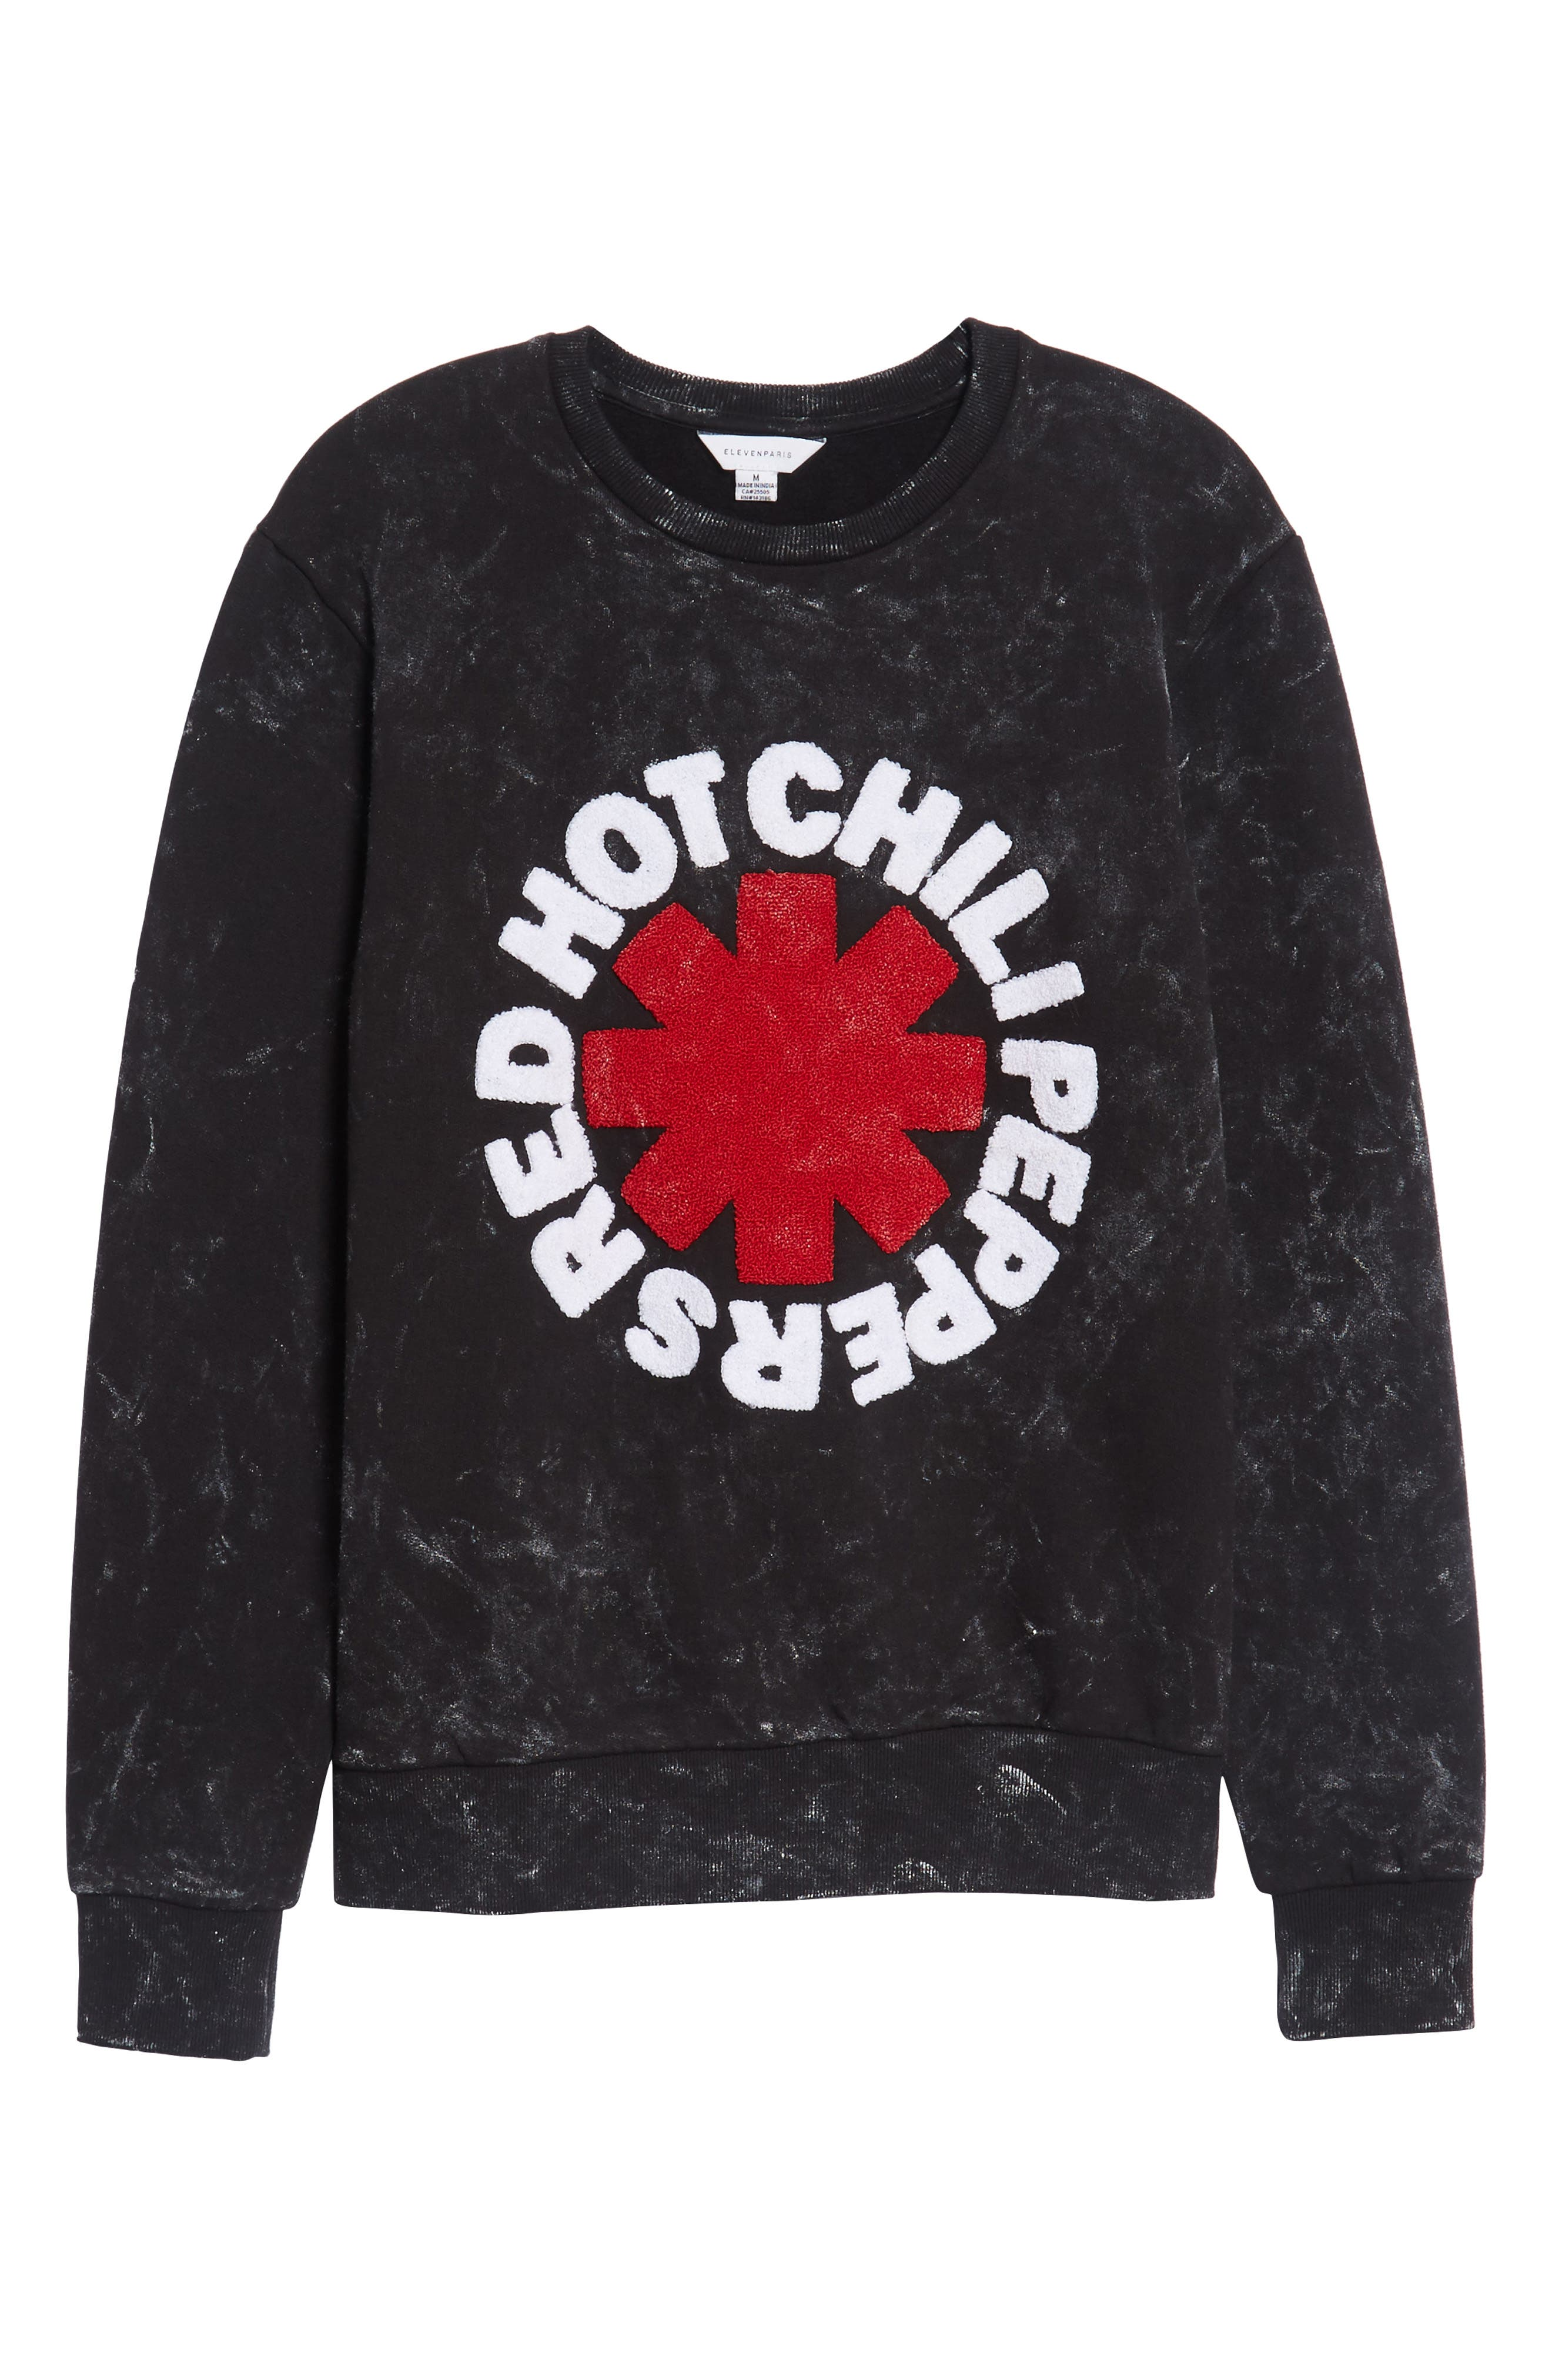 Red Hot Chili Peppers Sweatshirt,                             Alternate thumbnail 6, color,                             Acid Black